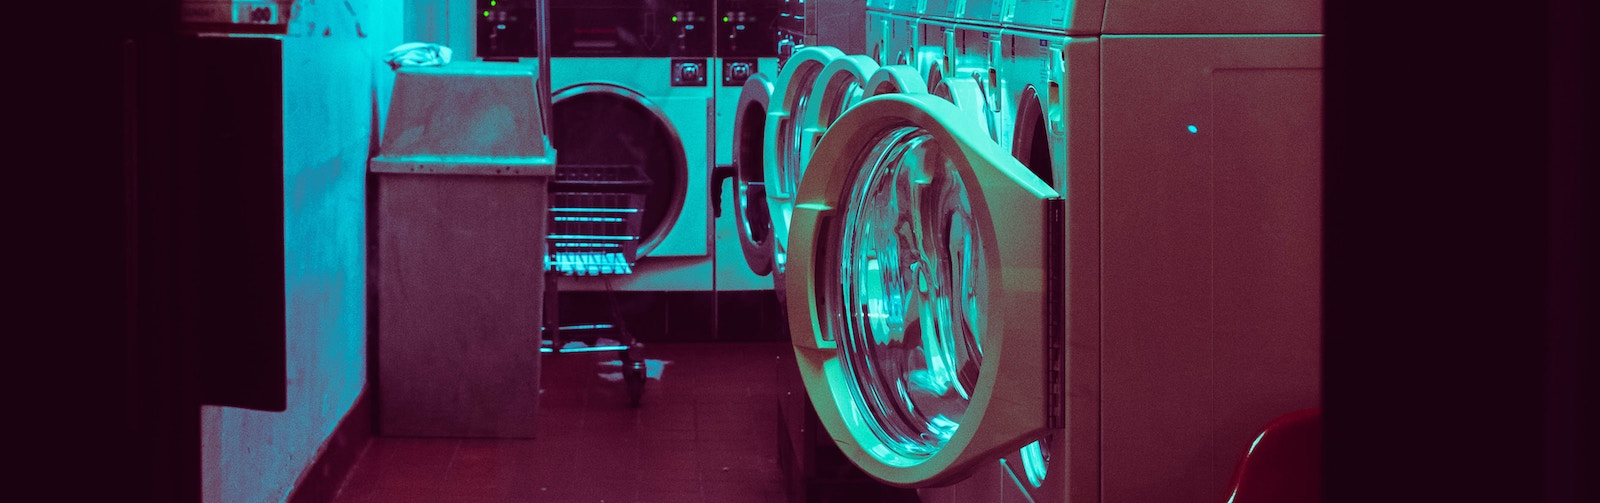 Picture of washing machines open in a laundromat.